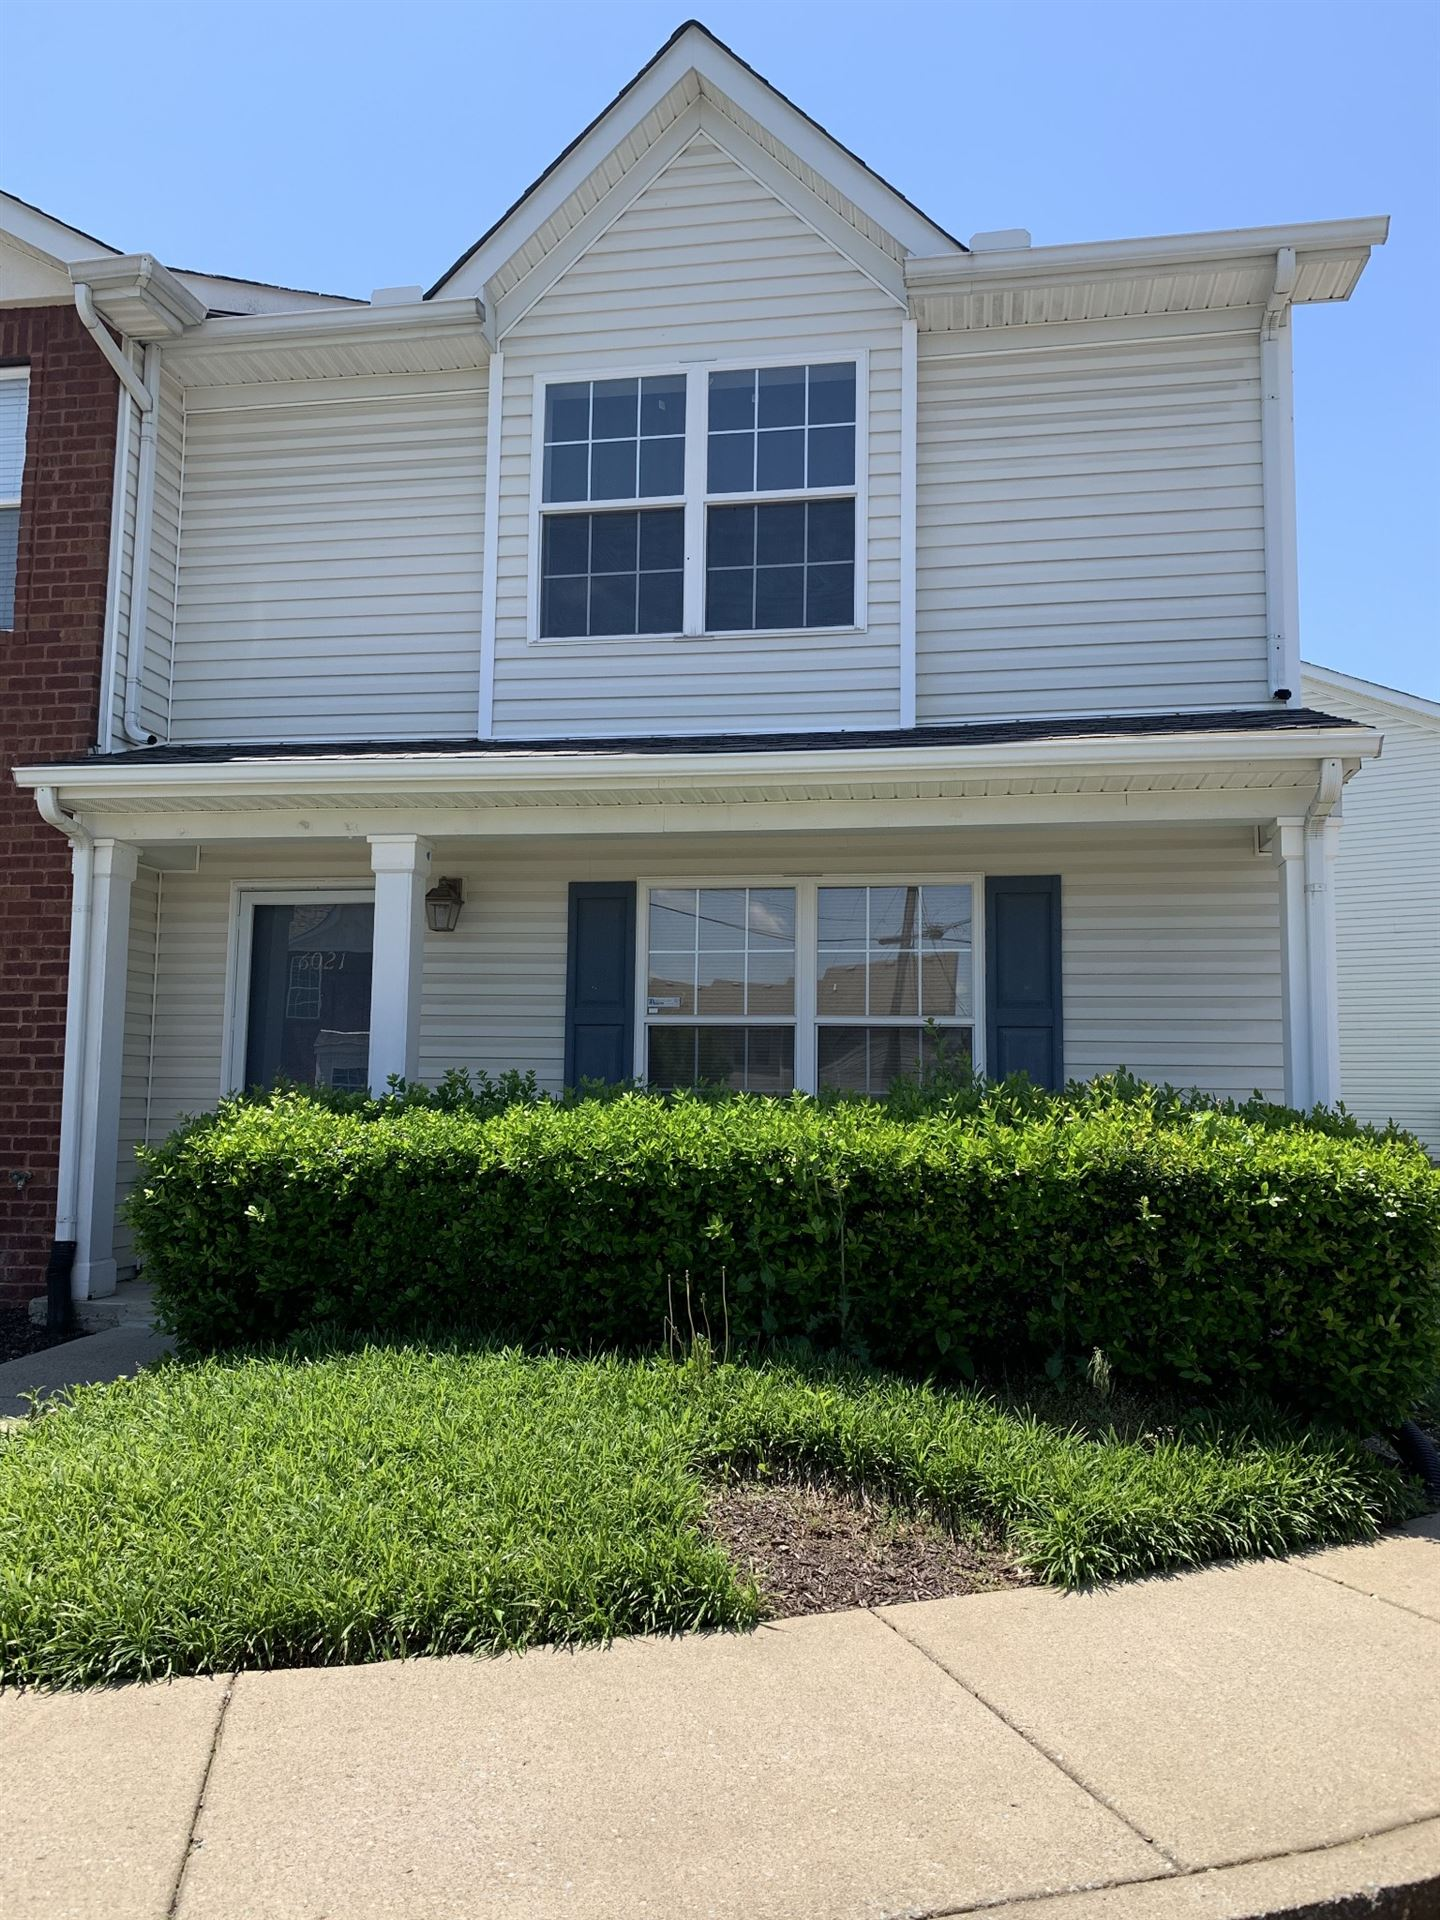 6021 Sagi Cir, La Vergne, TN 37086 - MLS#: 2251538